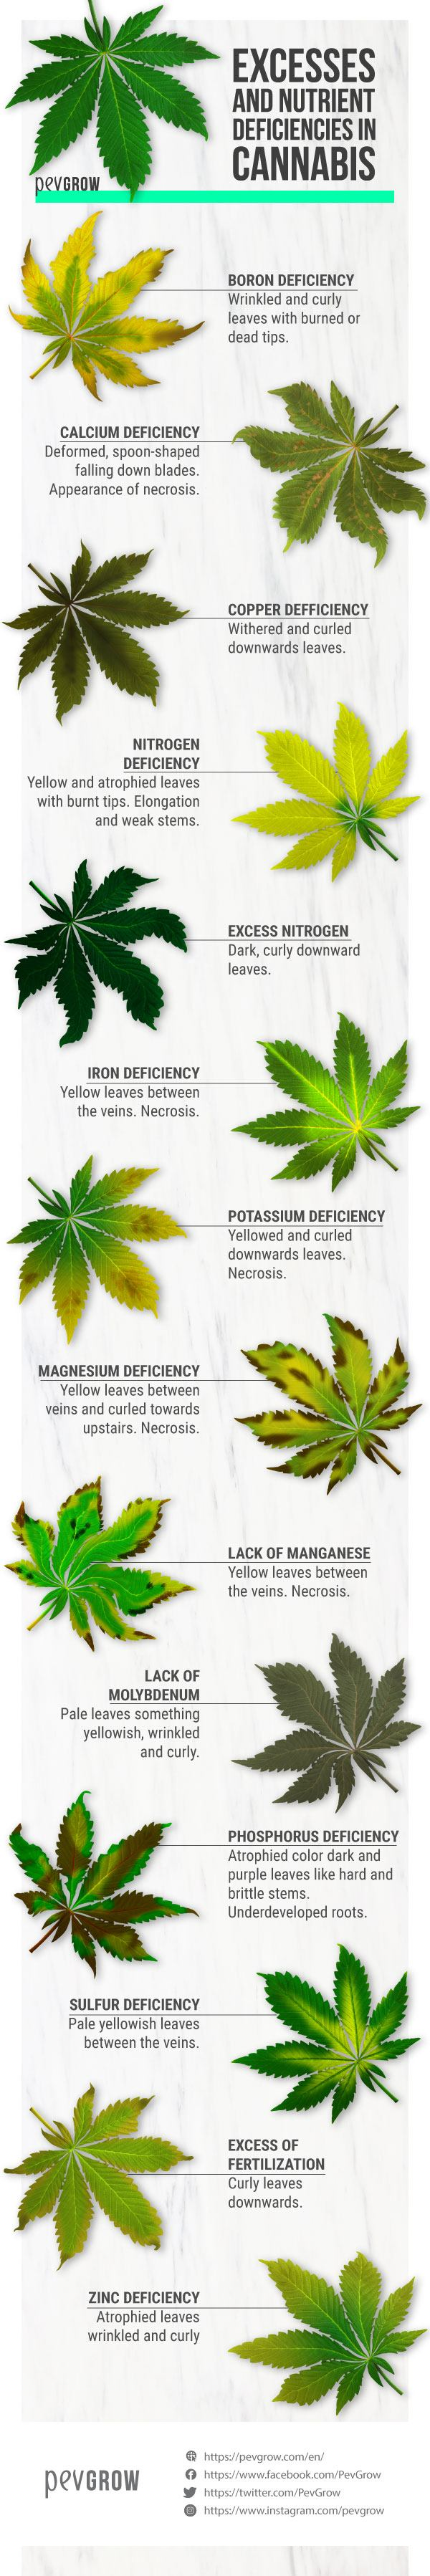 Excesses and deficiencies in the cultivation of marijuana